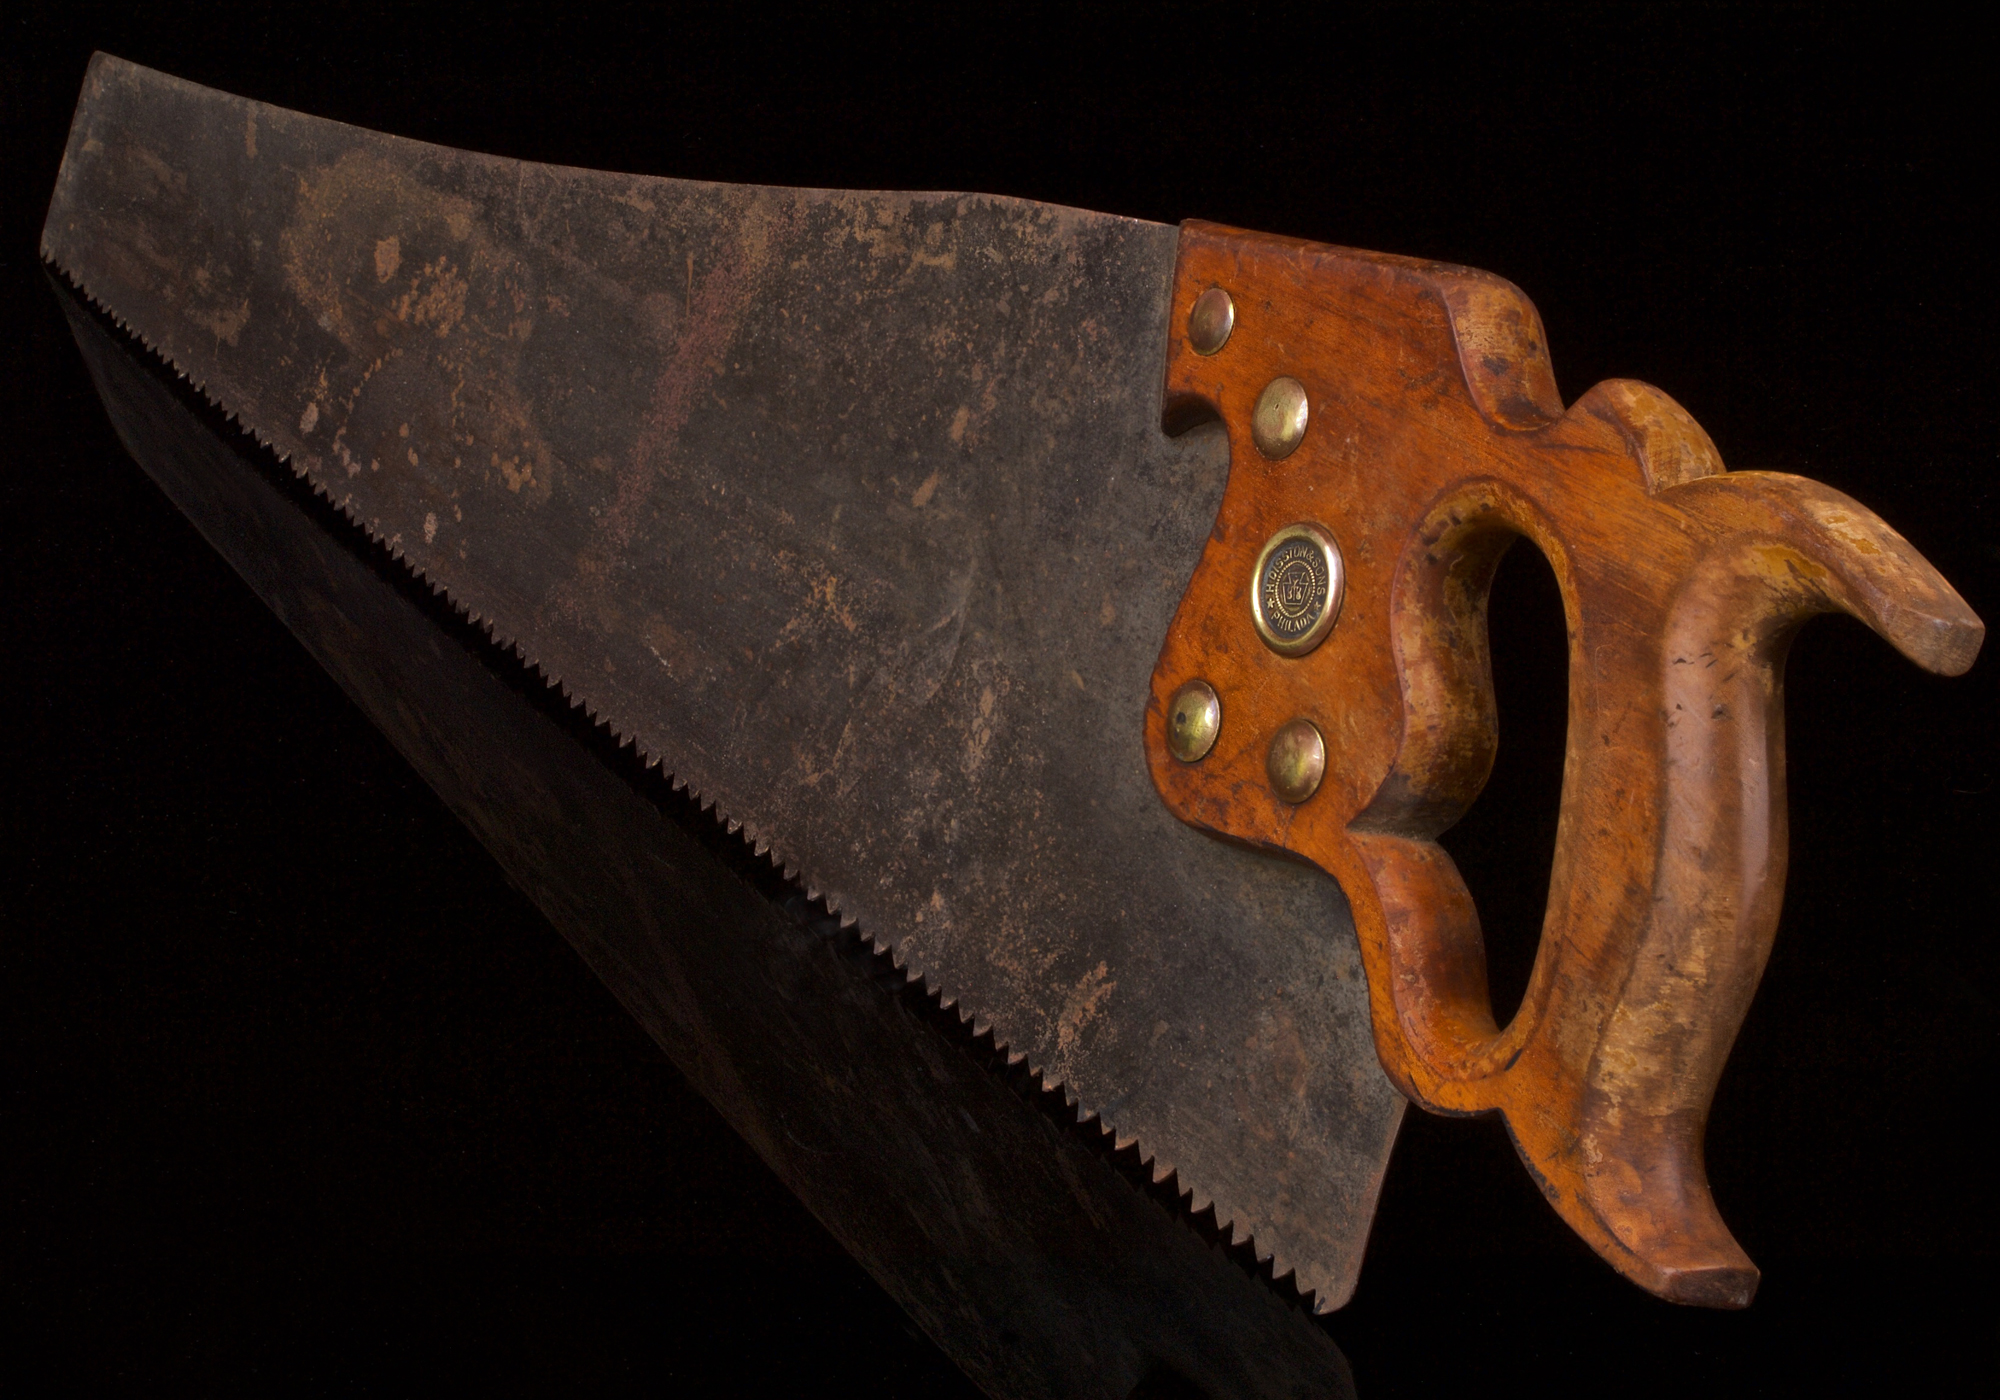 16 inch, Henry Disston and Sons D-8 Panel Handsaw (Circa early 1920's)